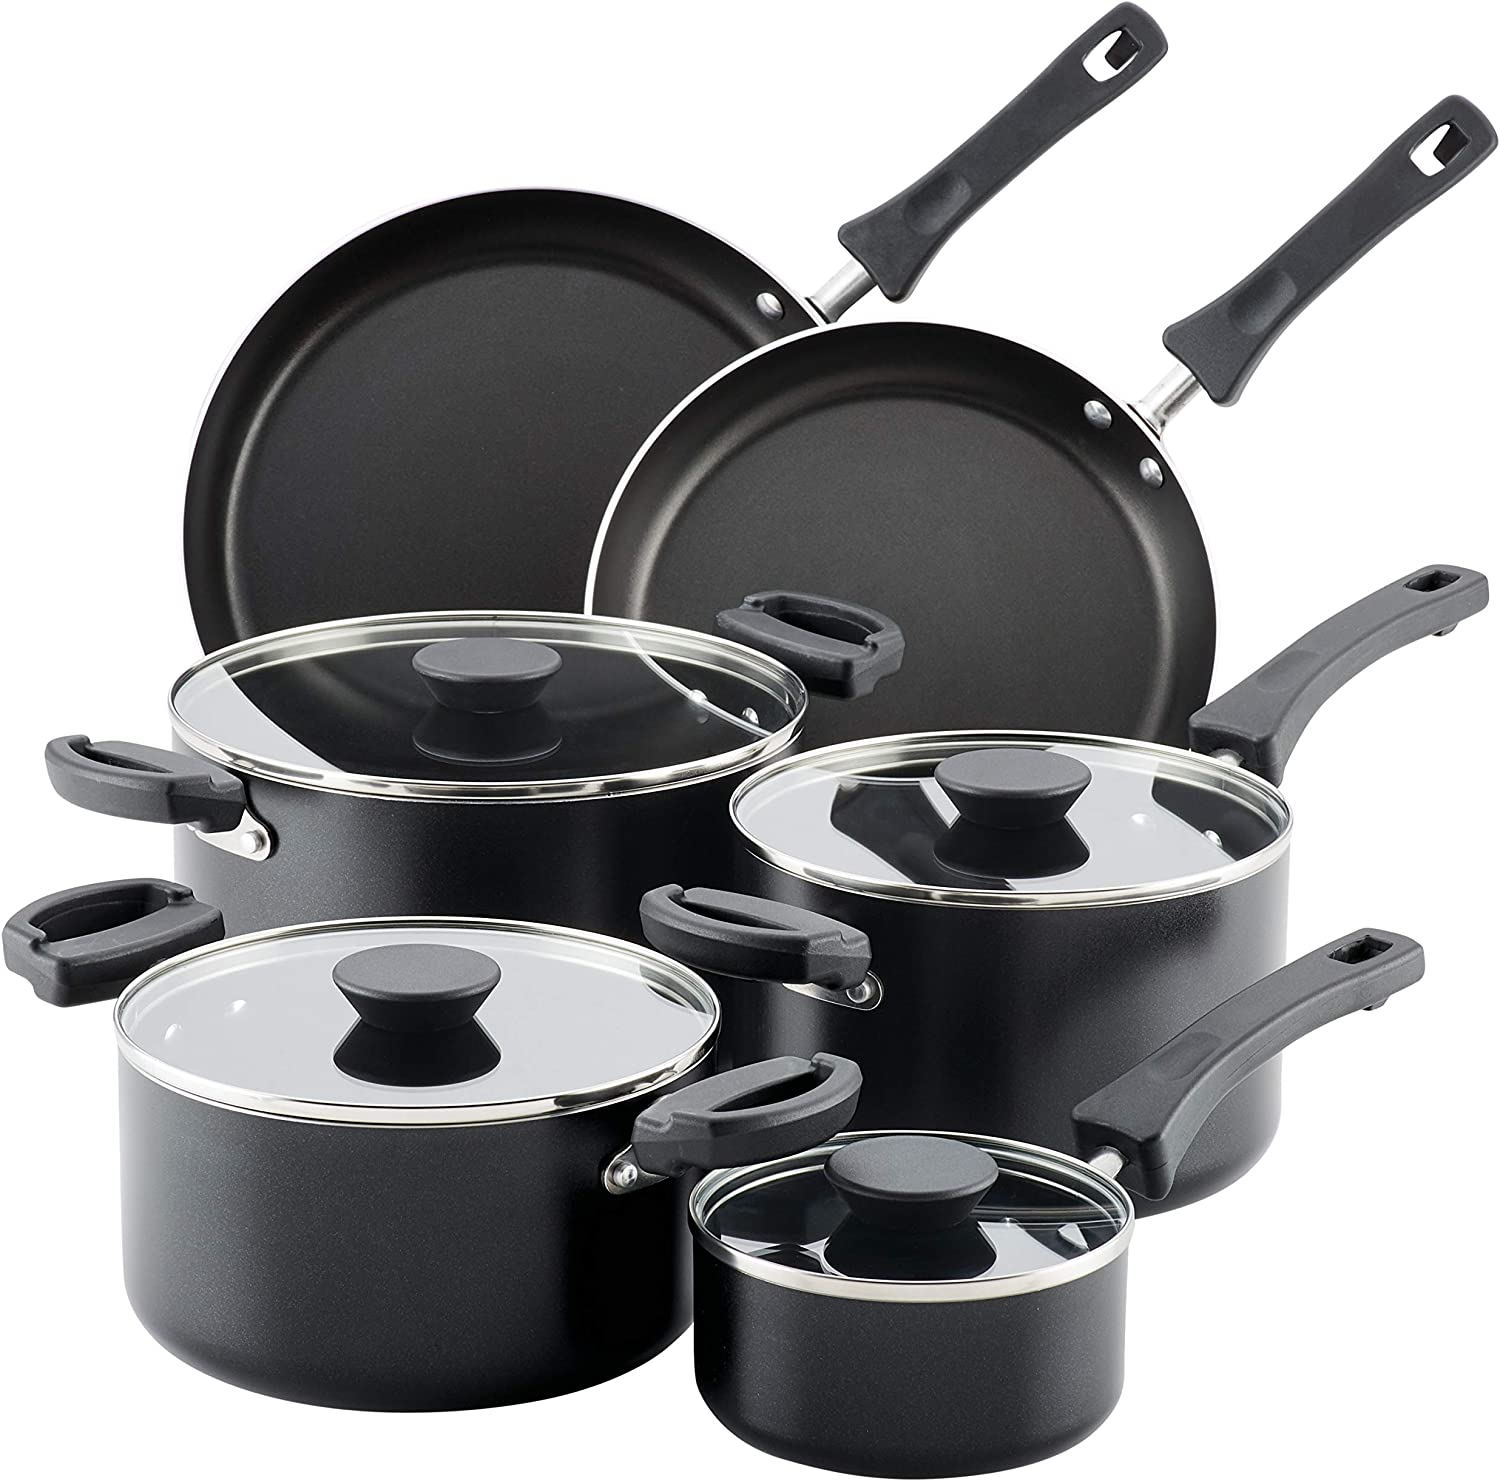 Farberware Neat Nest Space Saving Nonstick Cookware Pots and Pans Set/Dishwasher Safe, Made in The USA, 10 Piece, Black